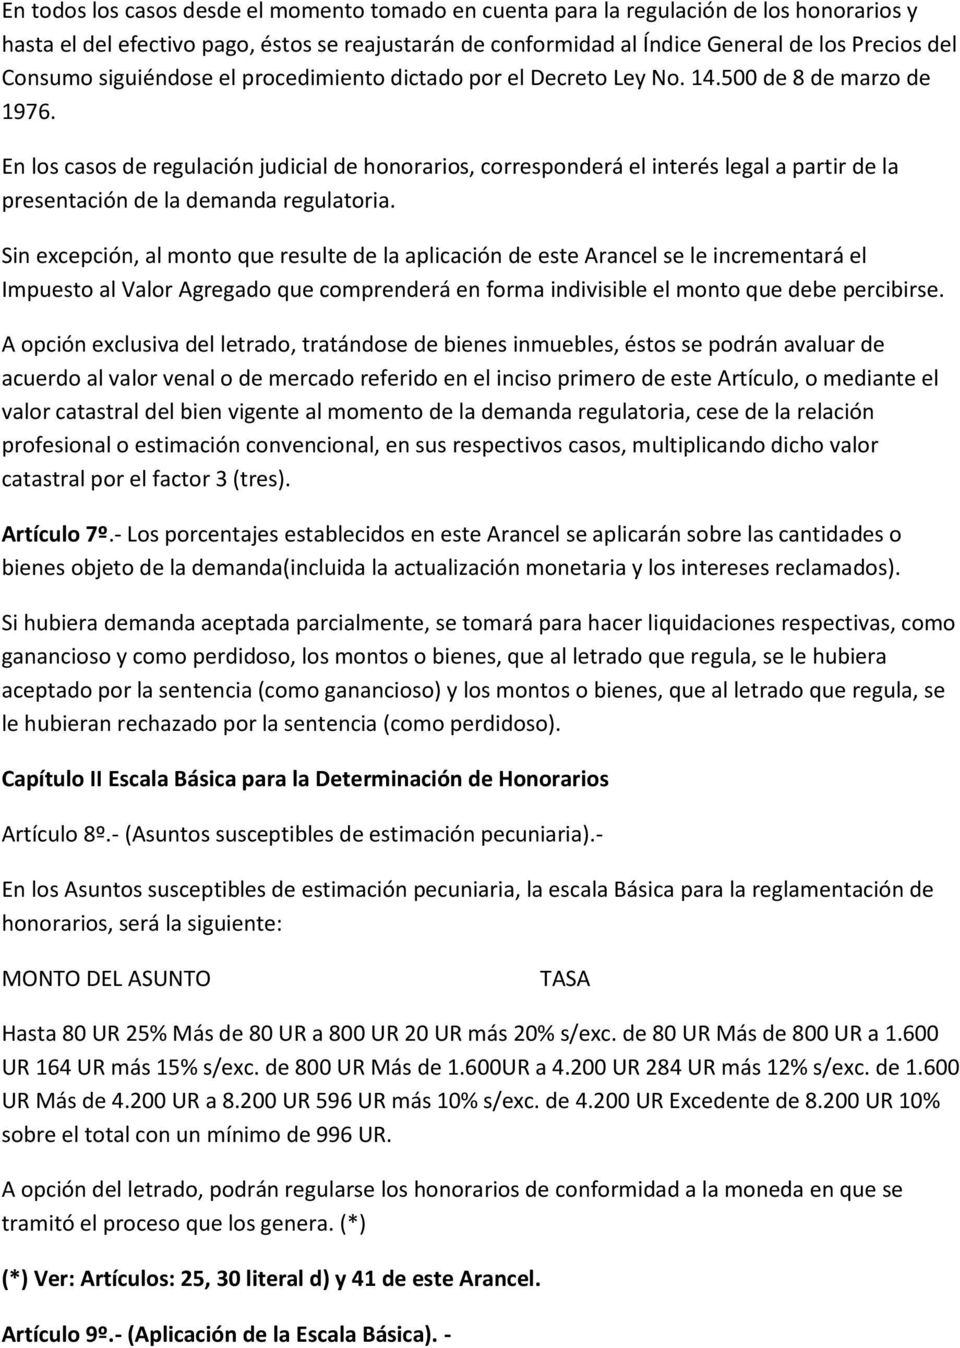 En los casos de regulación judicial de honorarios, corresponderá el interés legal a partir de la presentación de la demanda regulatoria.